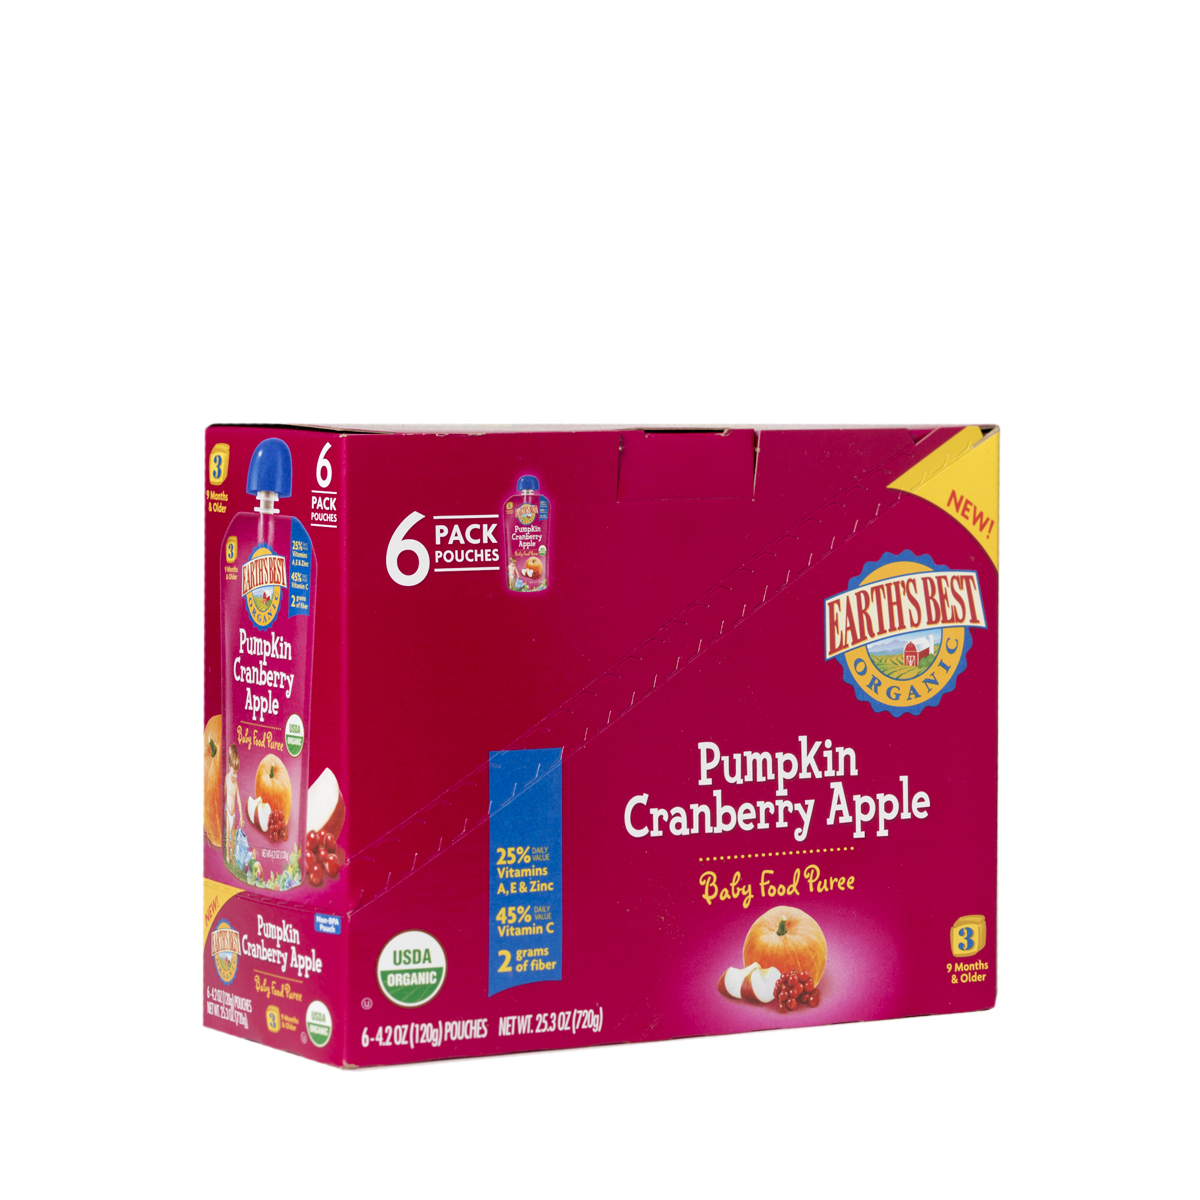 Earth's Best Pumpkin Cranberry Apple Puree